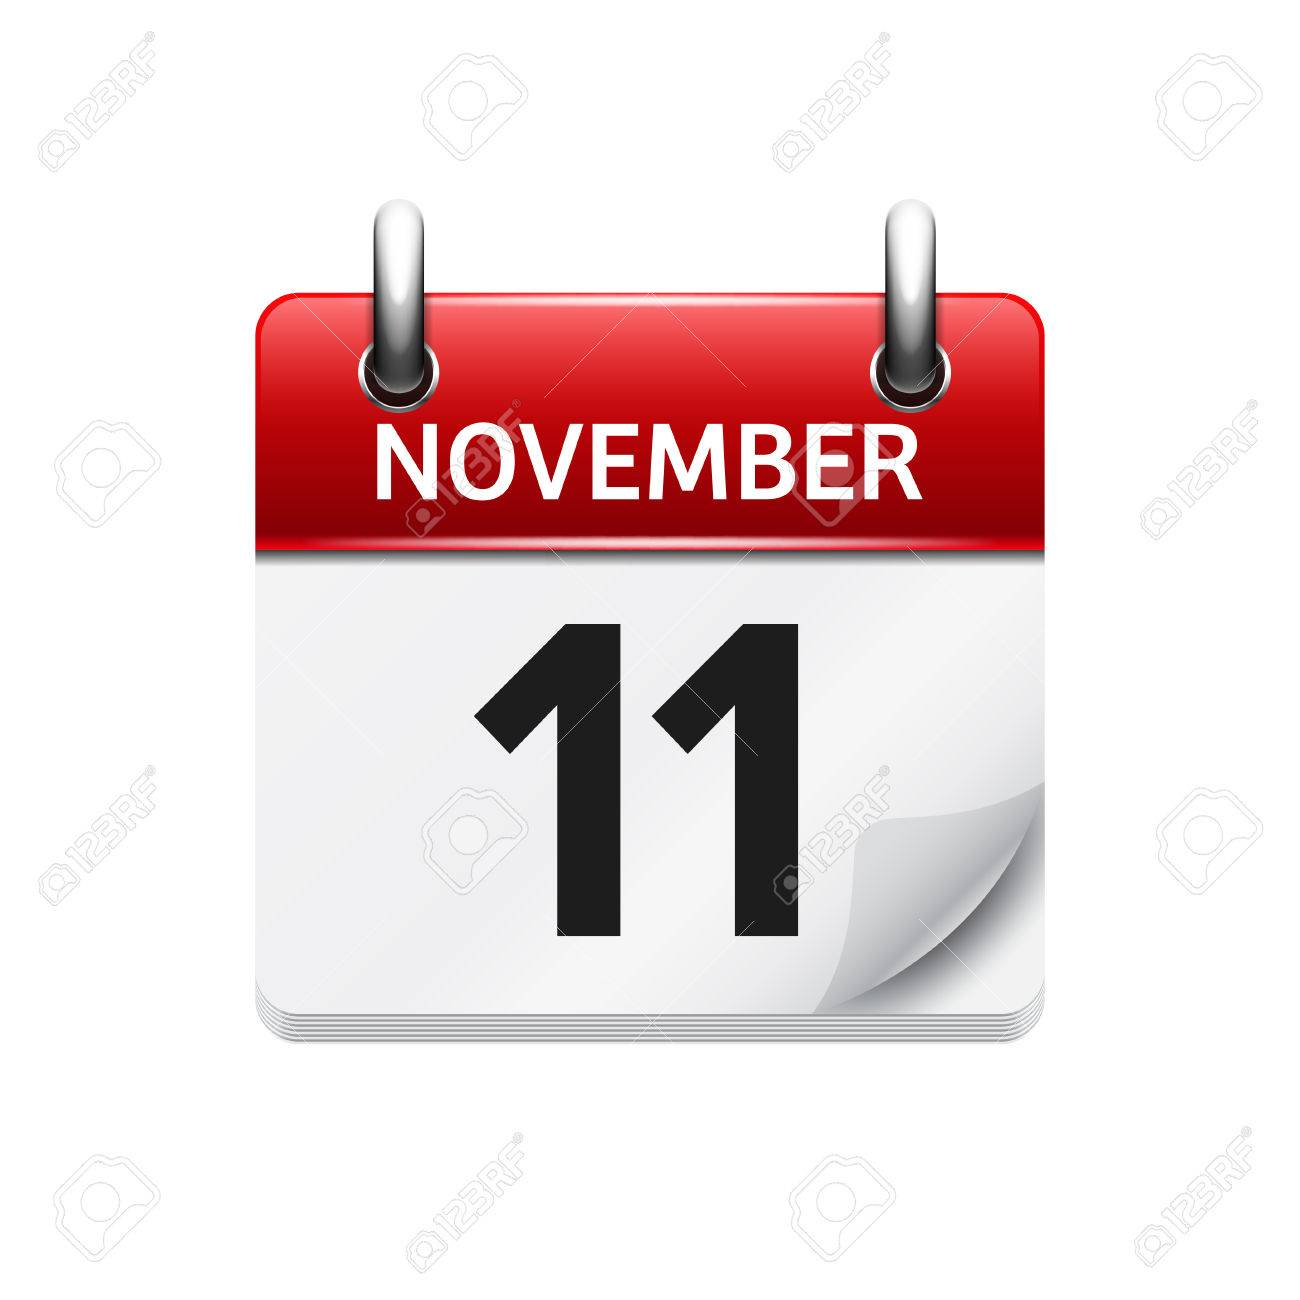 November 11. Vector flat daily calendar icon. Date and time, day, month. Holiday. - 54056858